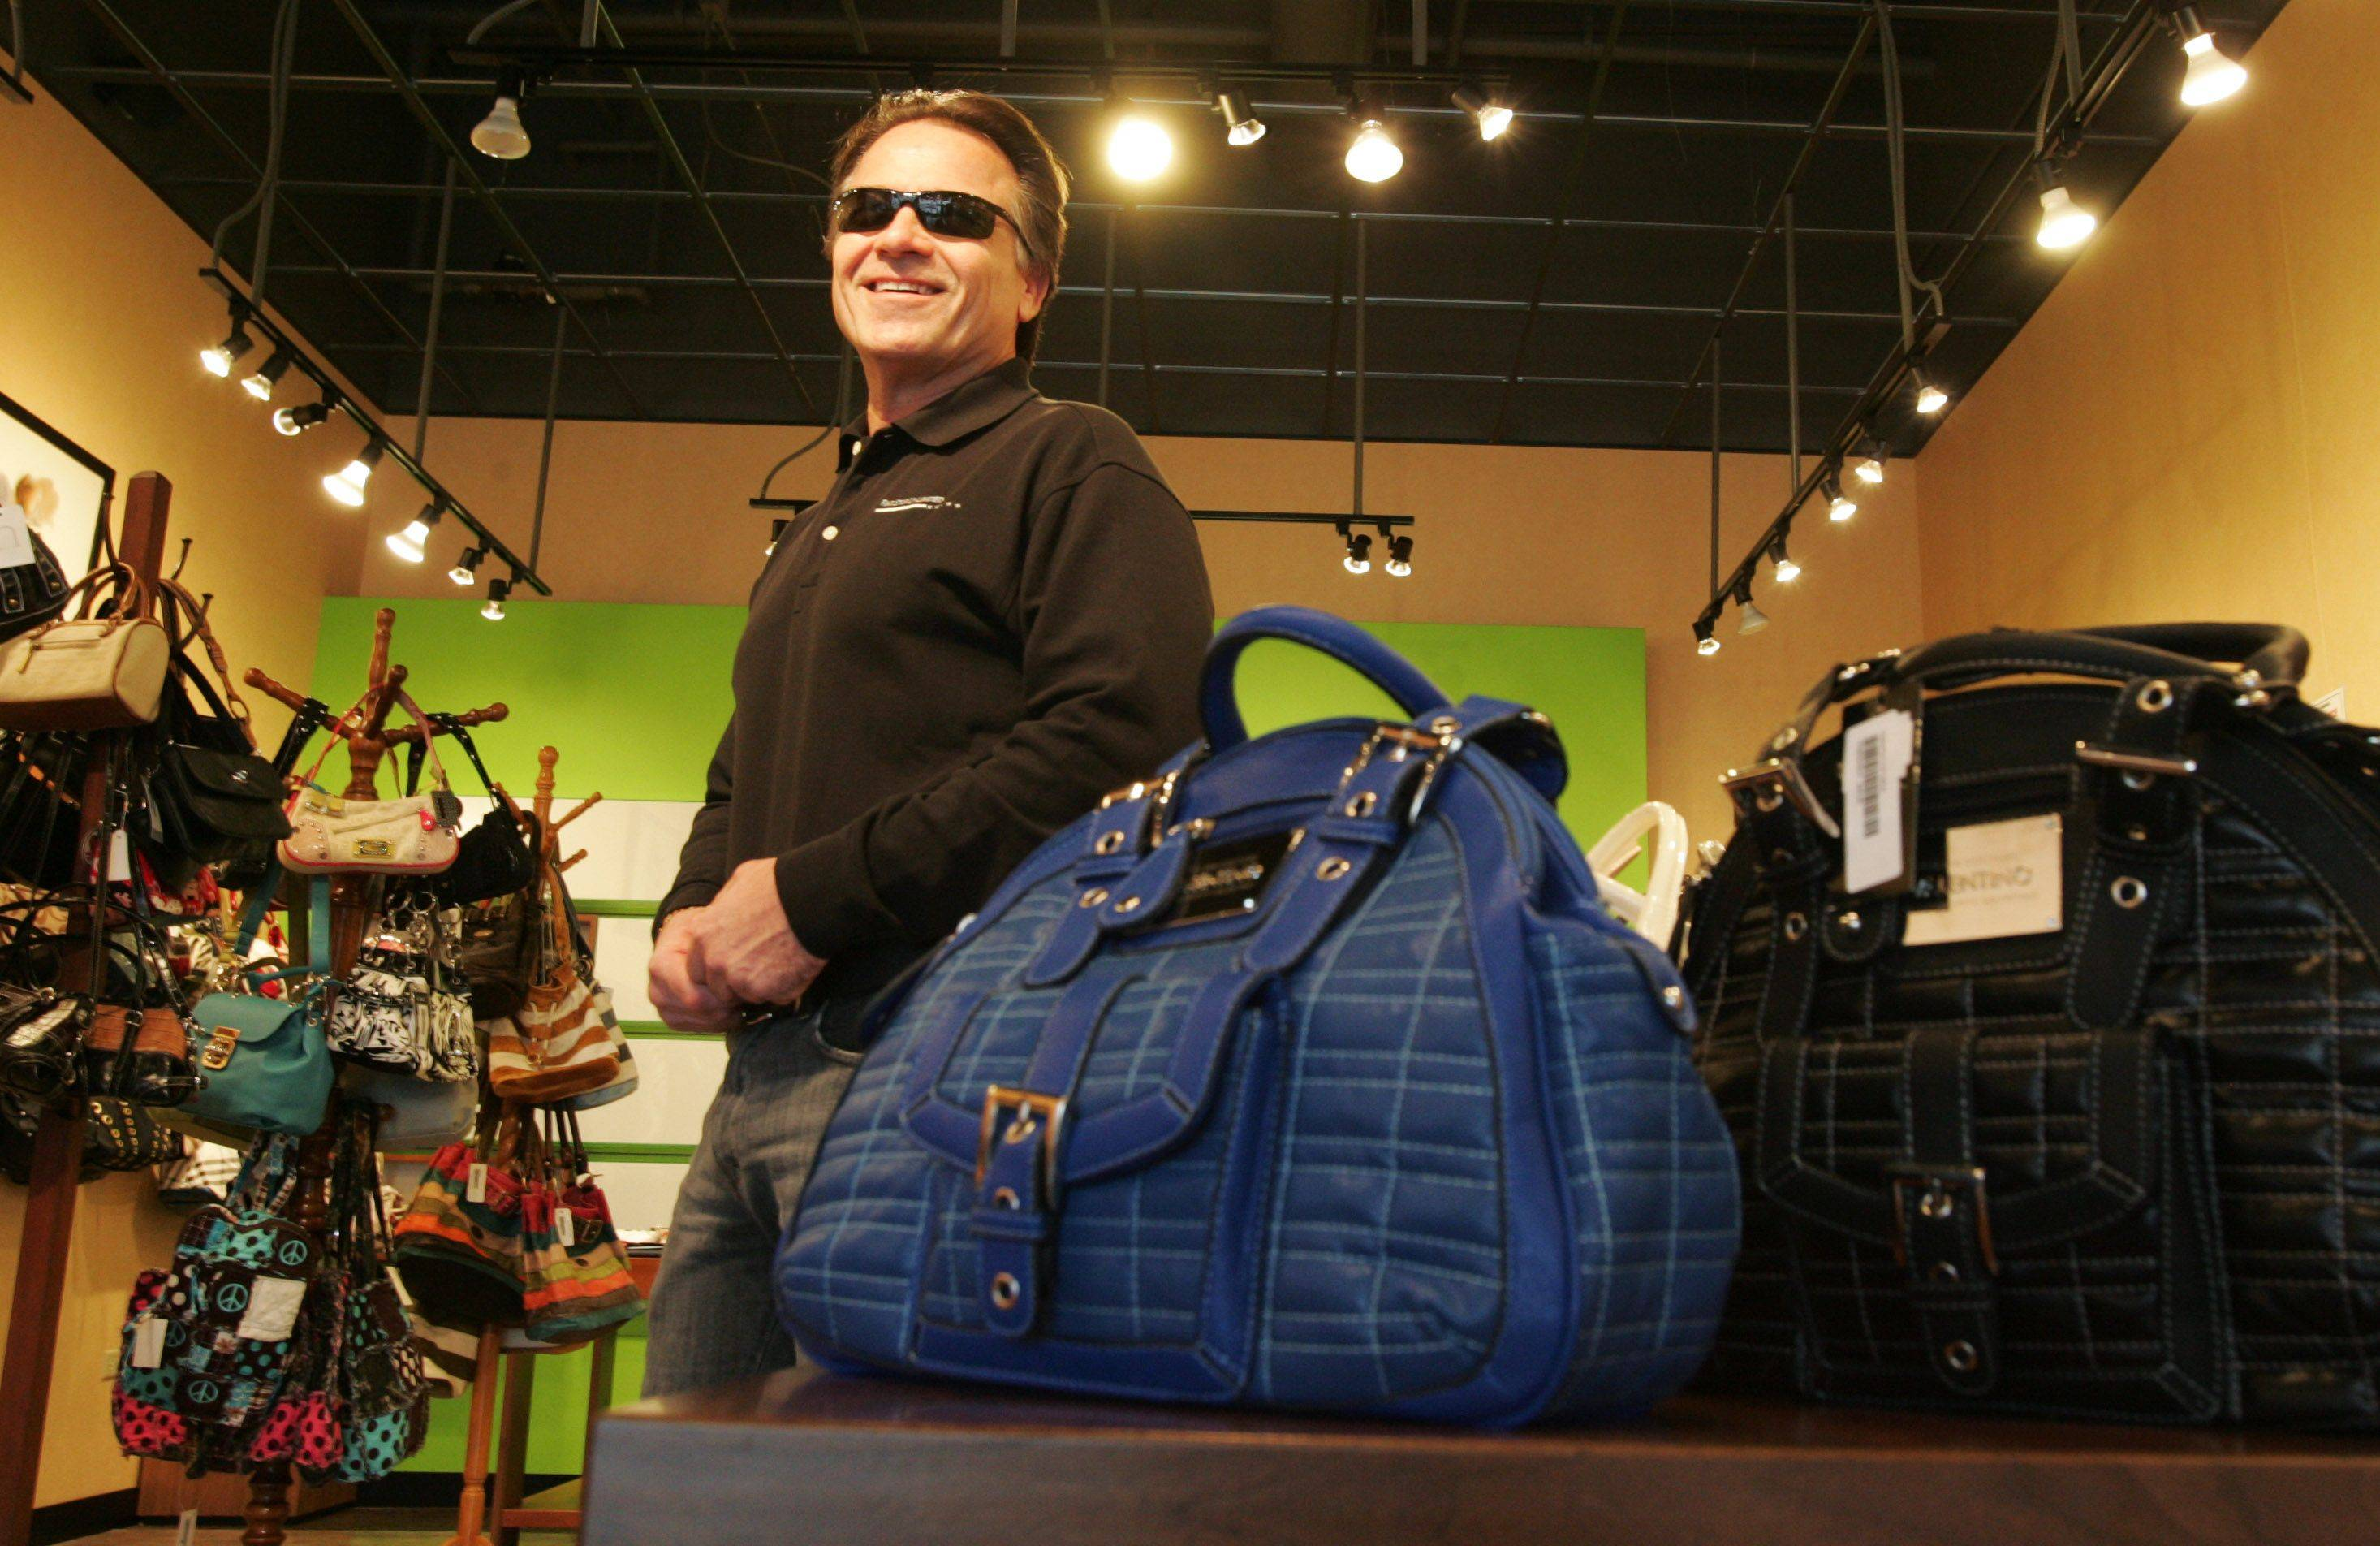 Dan Druck is the owner of Knock It Off boutique at Algonquin Commons, which sells designer-inspired accessories.